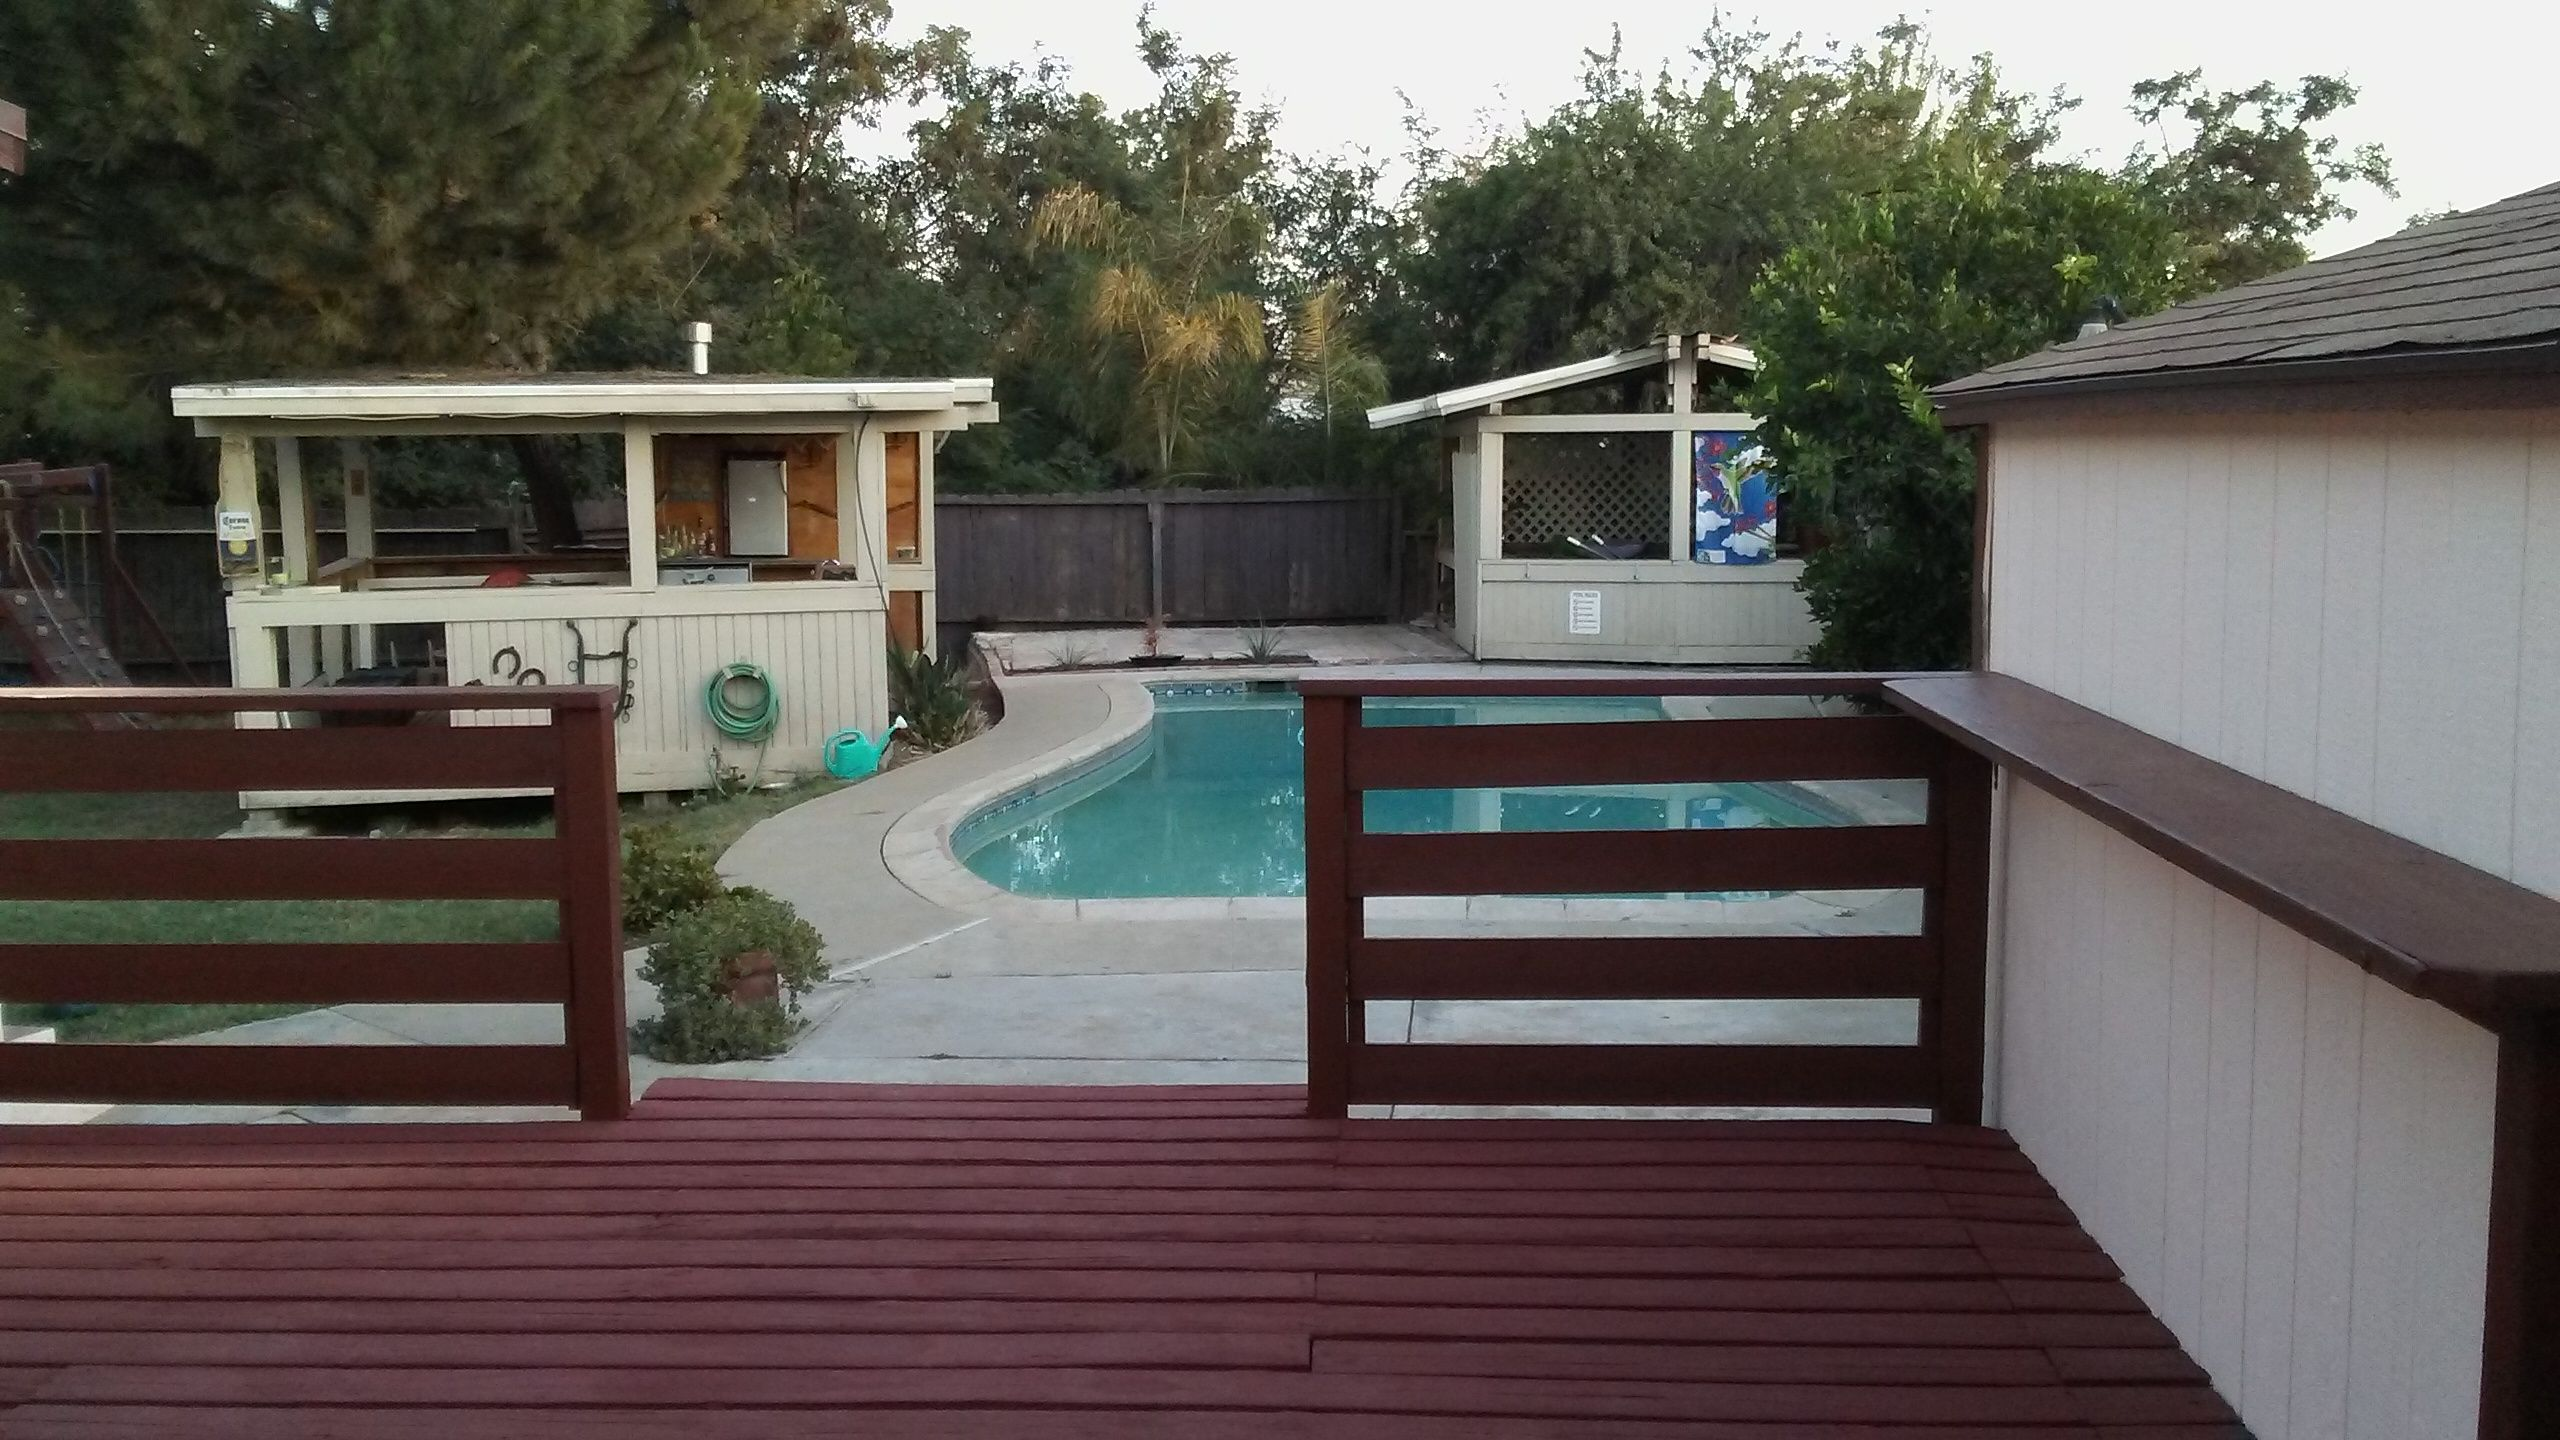 Deck After Renovation With Sherwin Williams Superdeck Solid Stain In Sequoia Deck Stain Colors Staining Deck House Colors